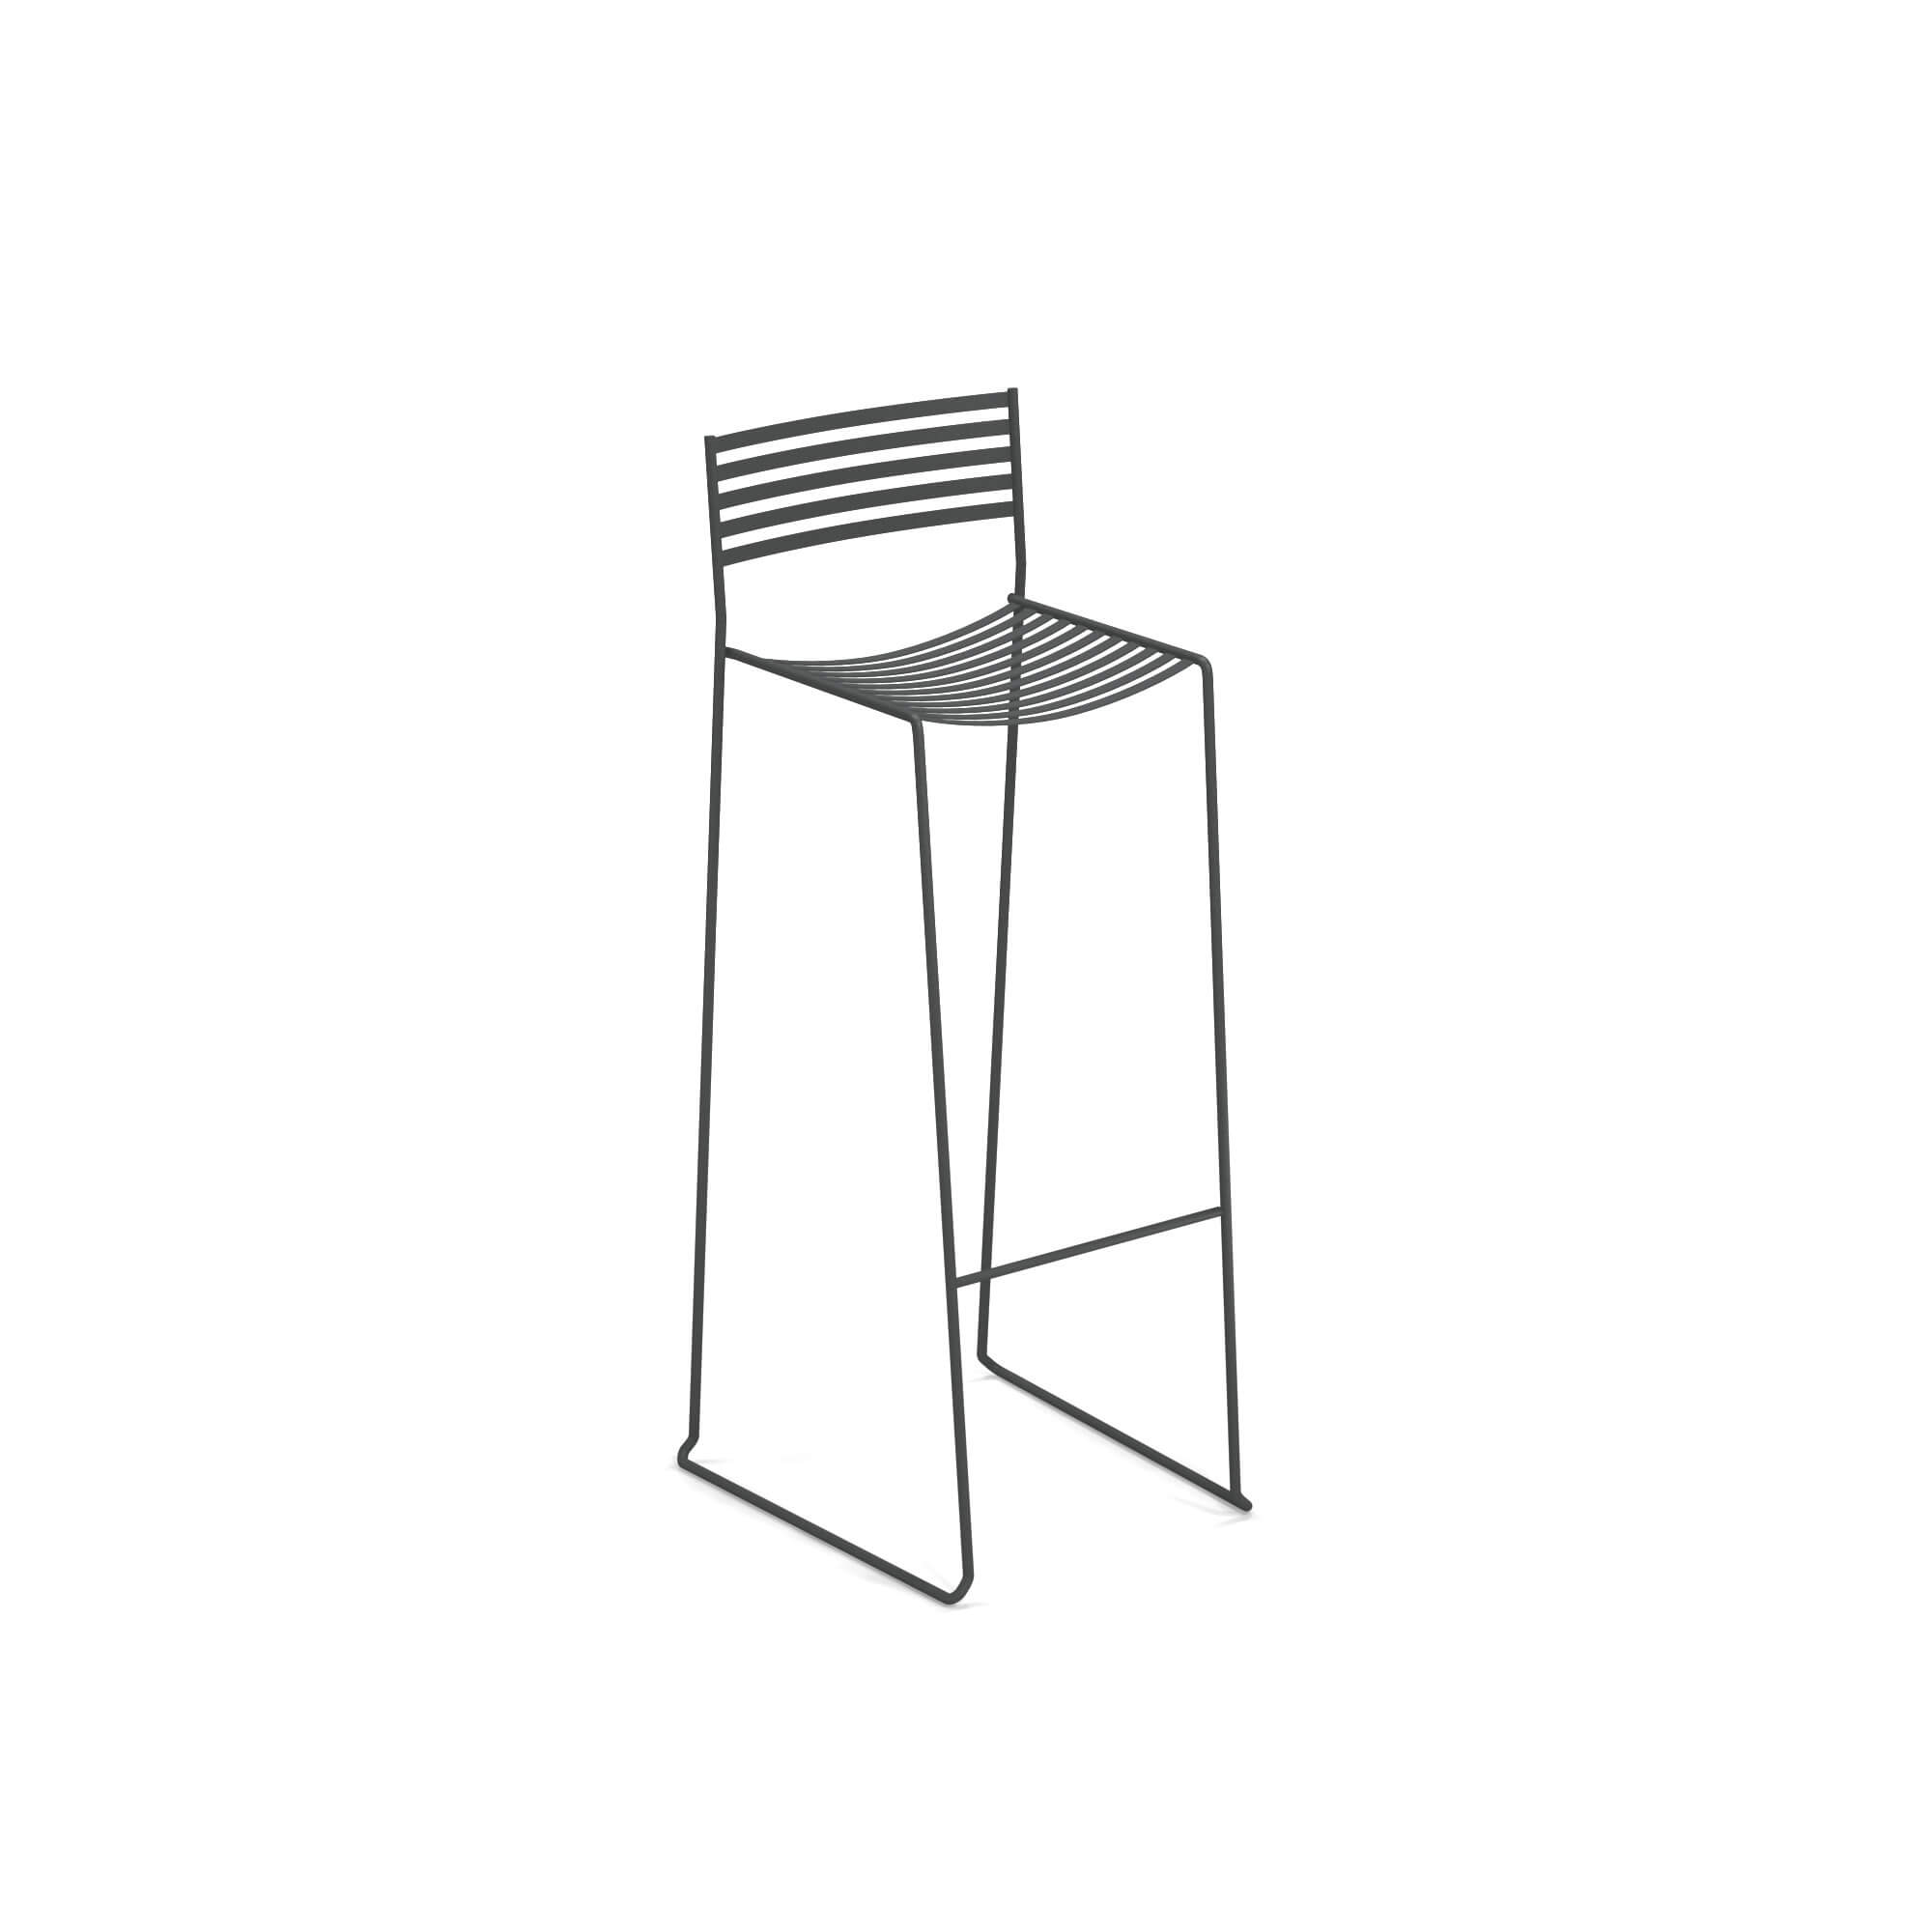 Marvelous Garden Barstool Outside In Steel Collection Aero Theyellowbook Wood Chair Design Ideas Theyellowbookinfo